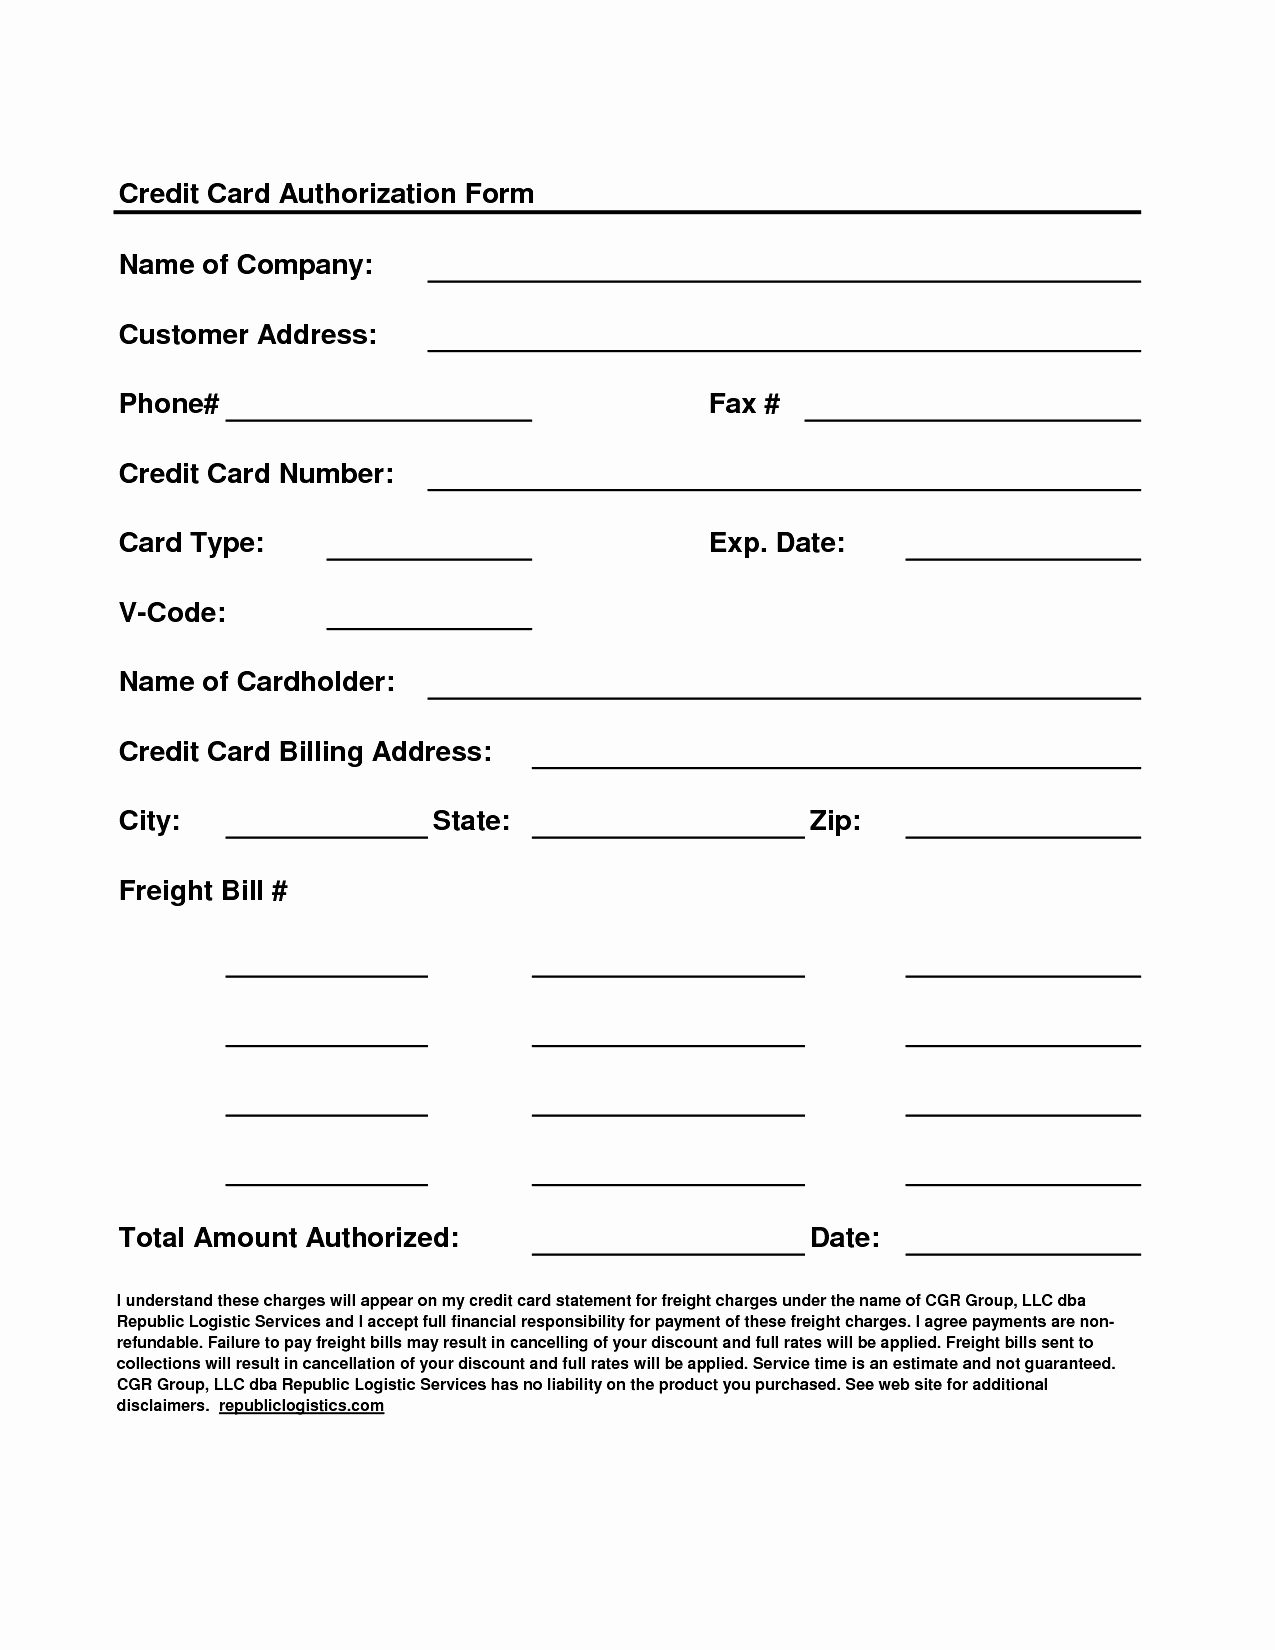 Credit Card form Template Beautiful Authorization form Template Example Mughals